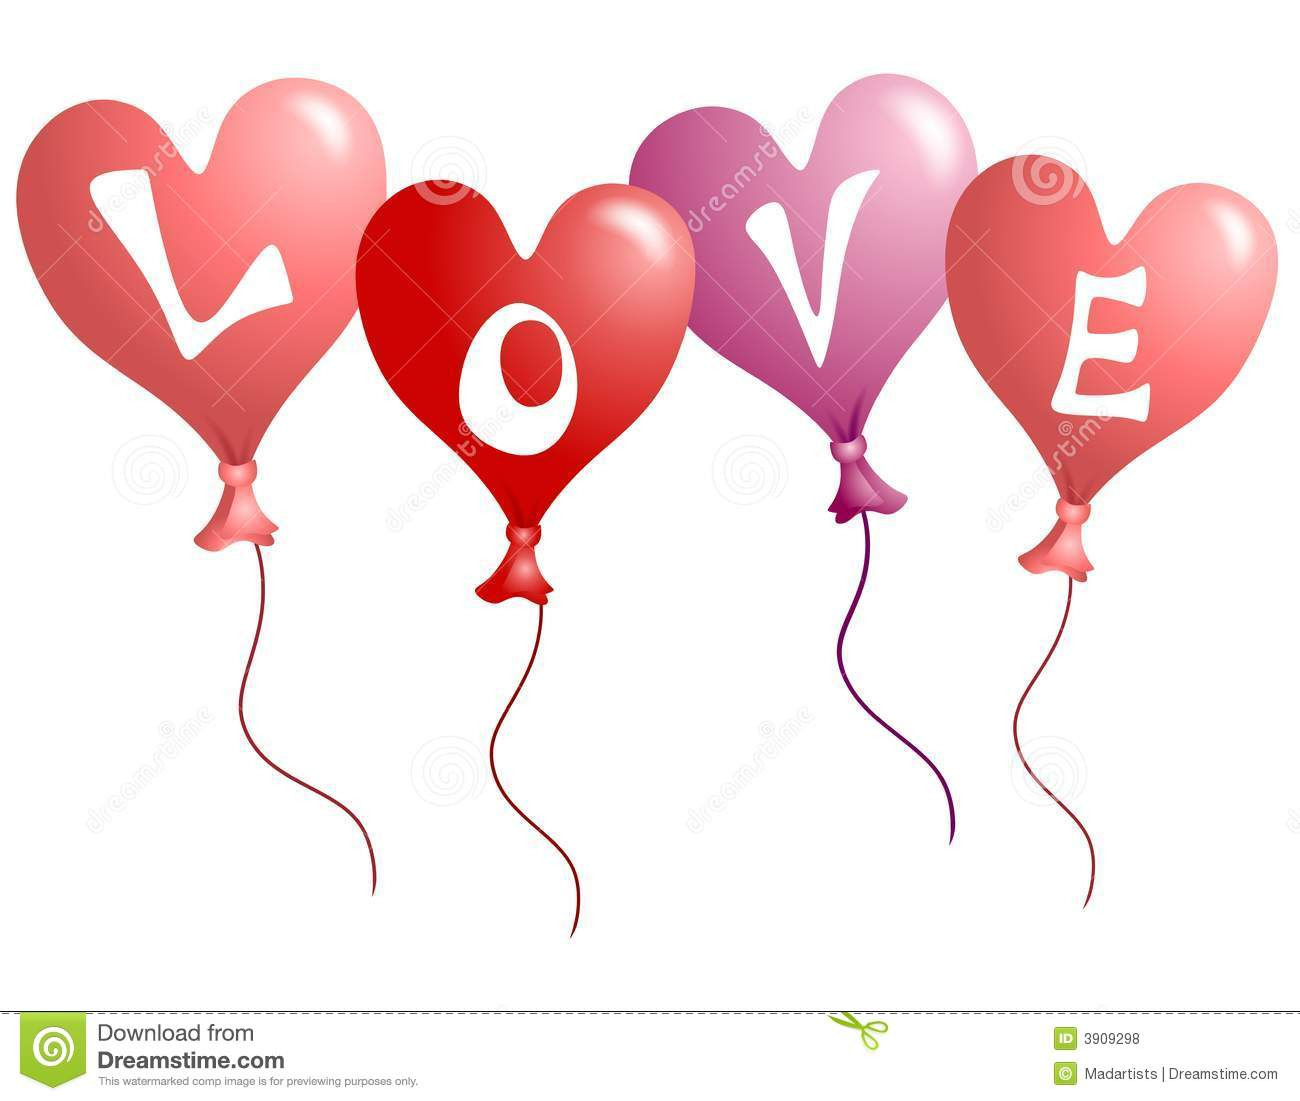 valentine's day love heart shaped balloons stock illustration